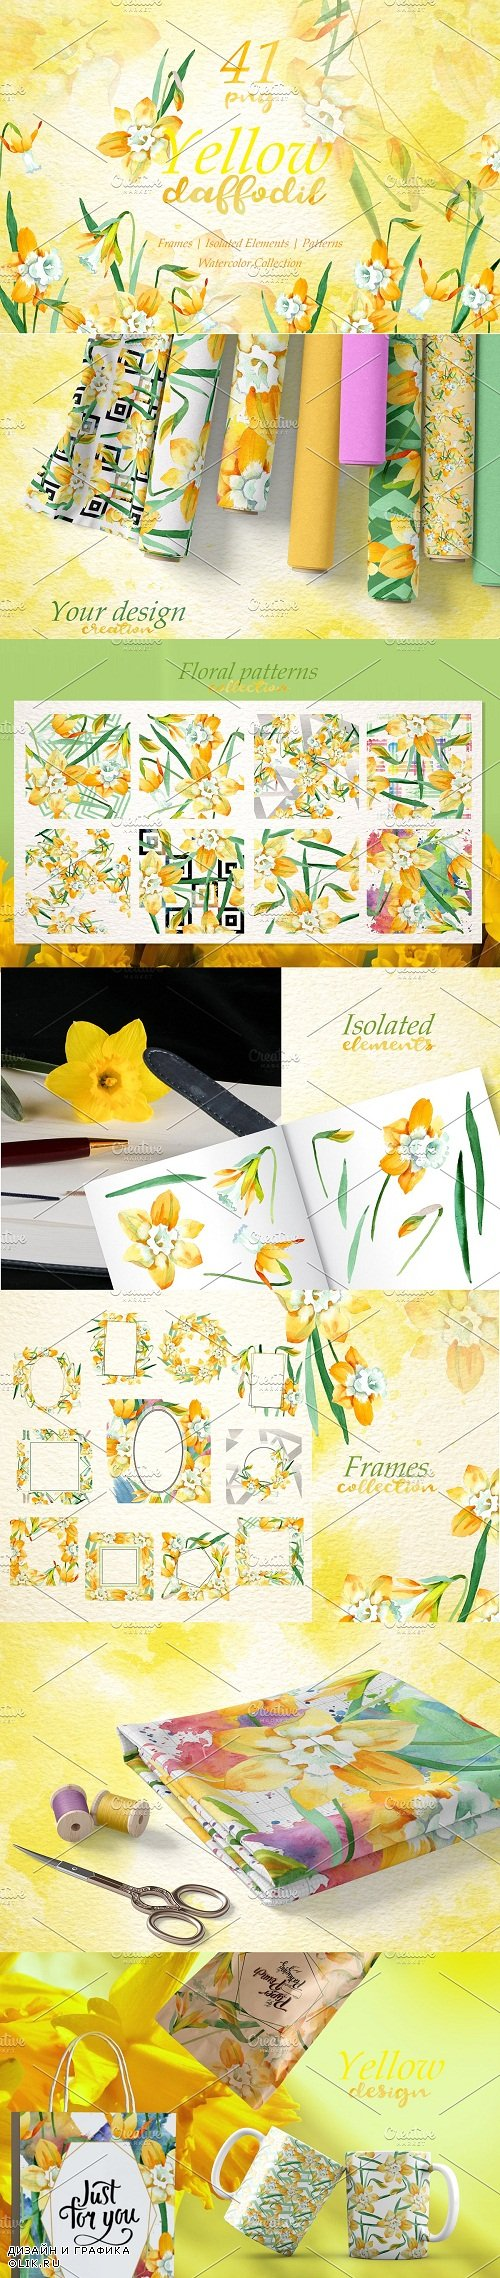 Yellow daffodil Watercolor png - 3570586